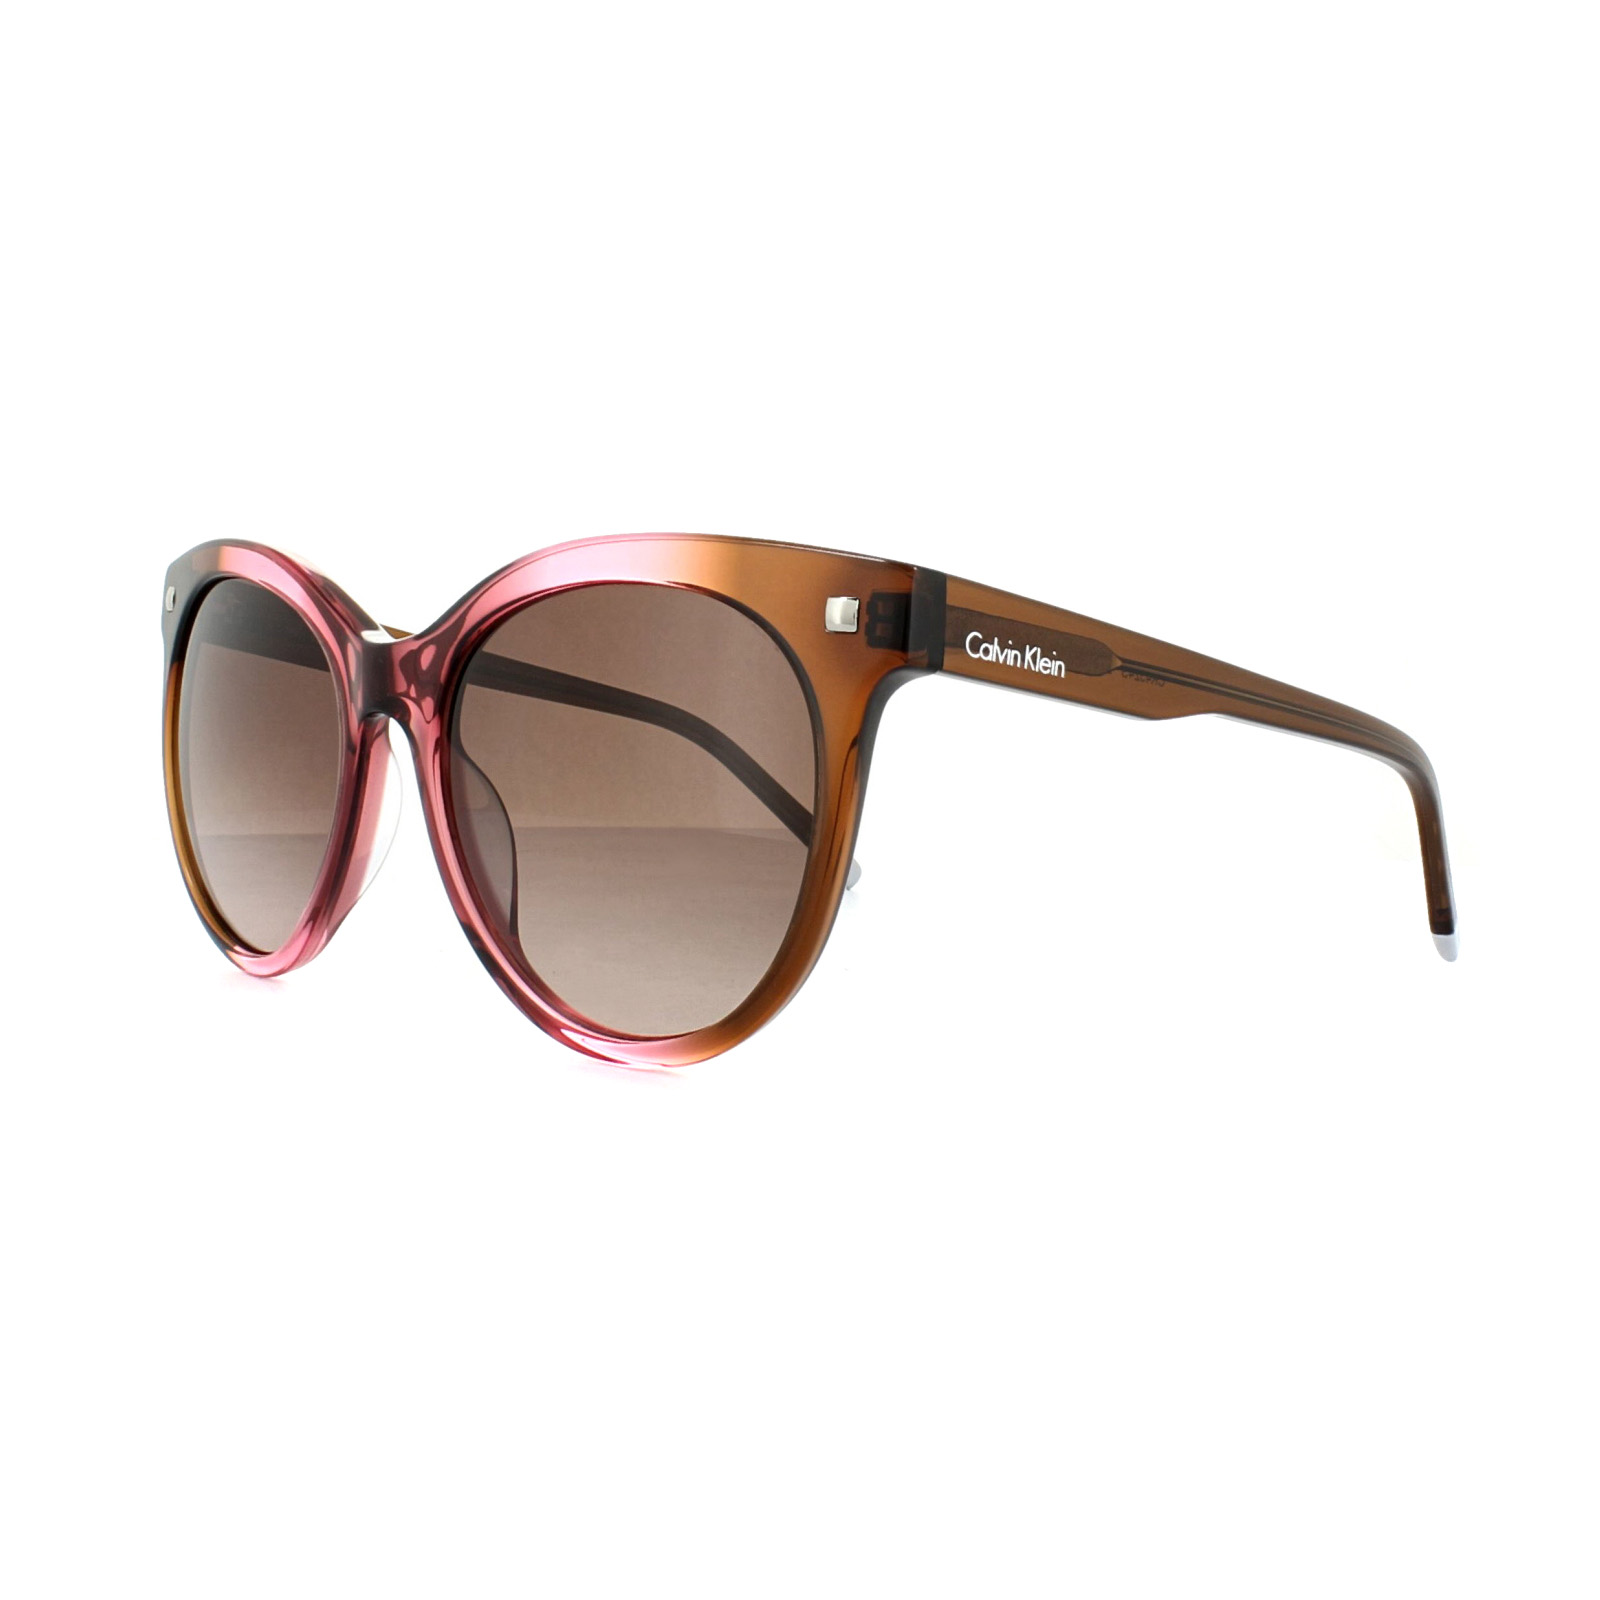 e5ae6ecc452 Sentinel Calvin Klein Sunglasses CK4324 248 Brown Rose Brown Gradient